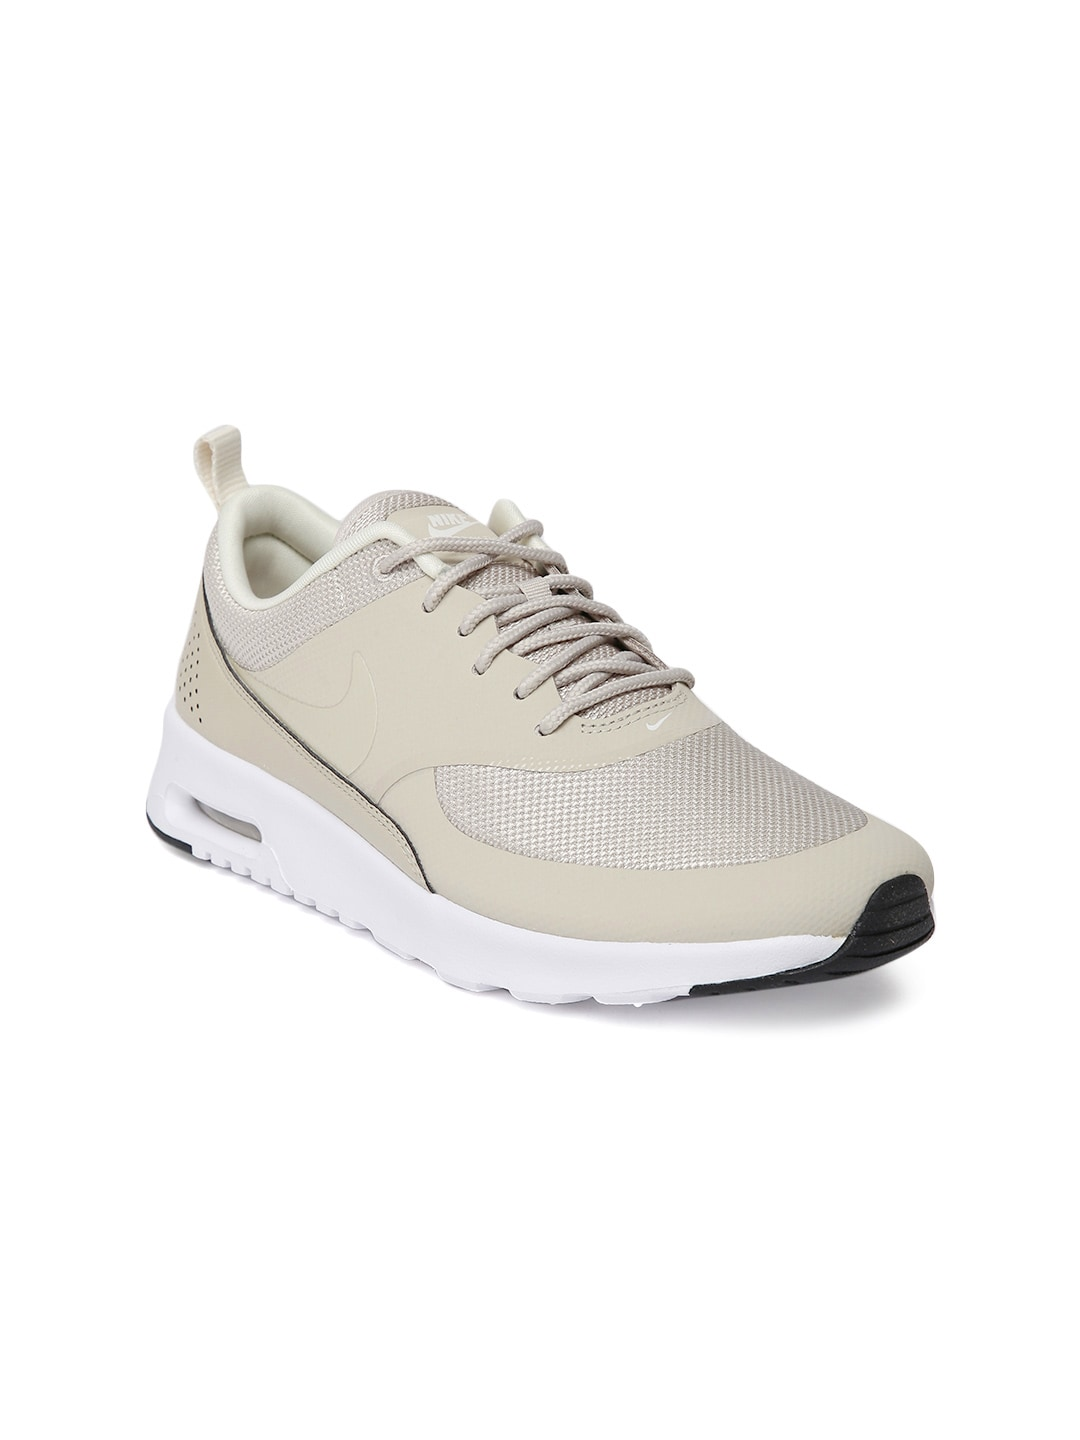 new product 8c874 f2b3d Nike Air Max - Buy Nike Air Max Shoes, Bags, Sneakers in India